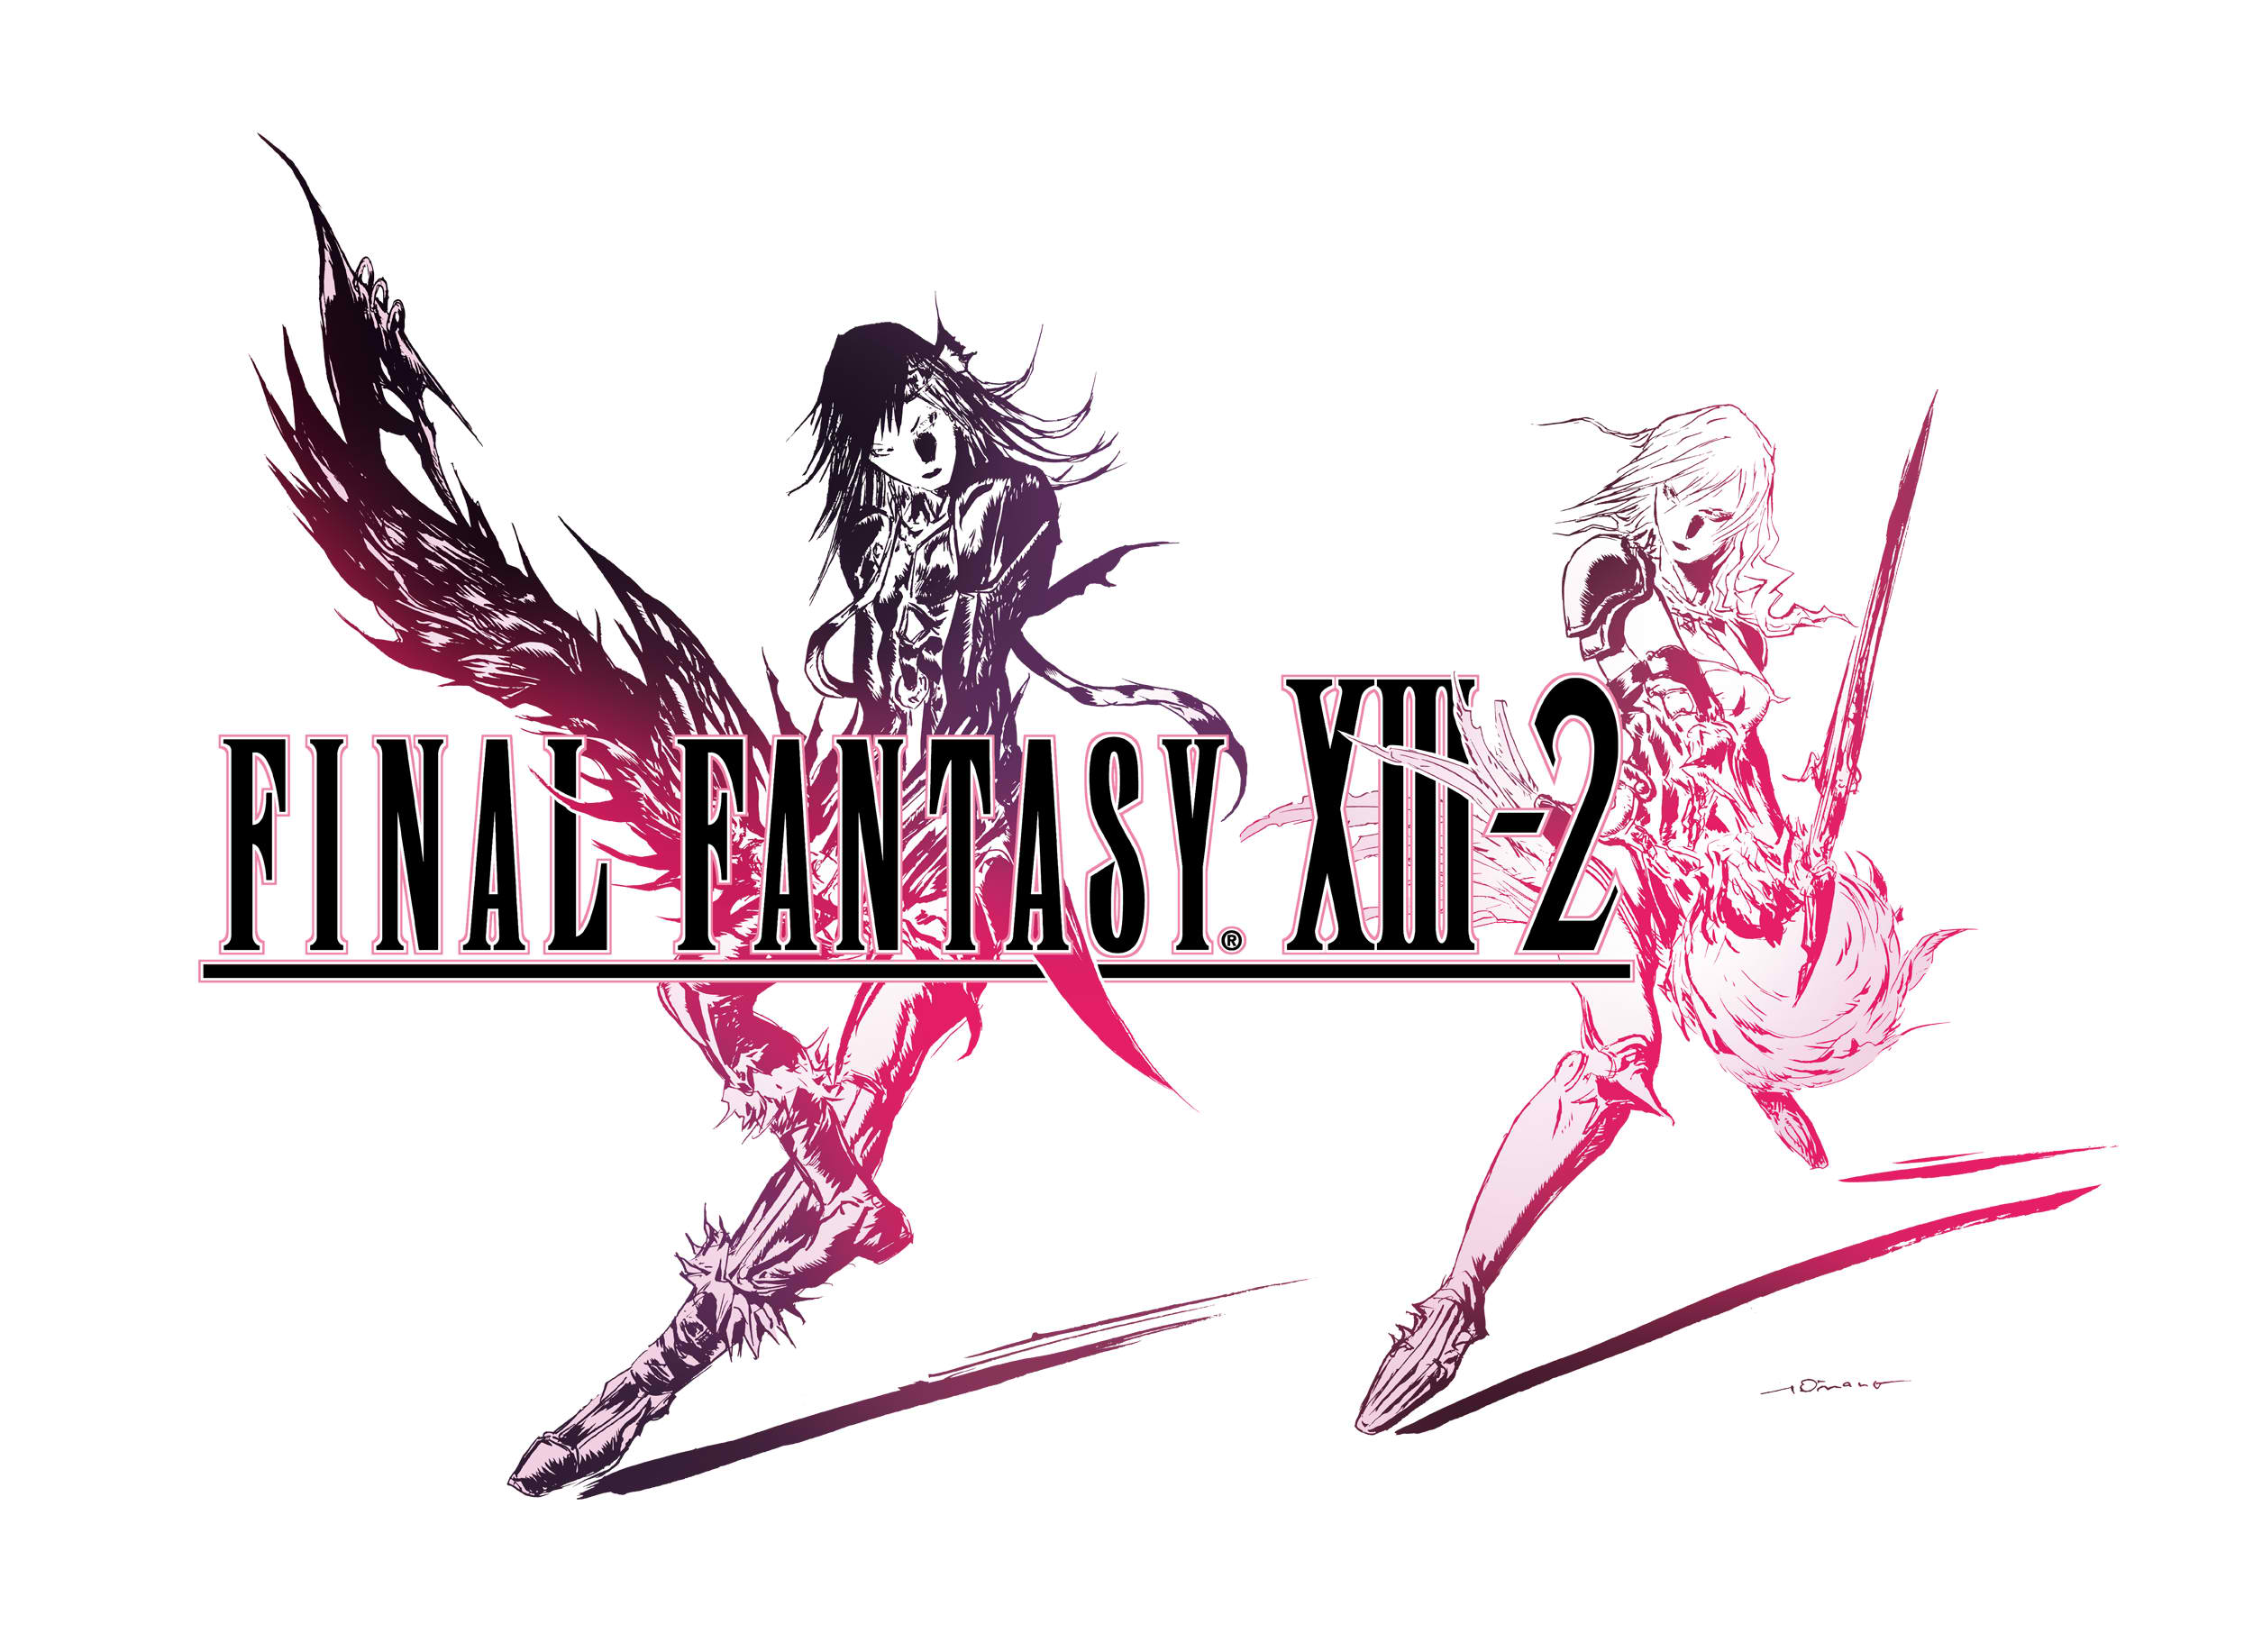 final fantasy xiii2 character renders and high